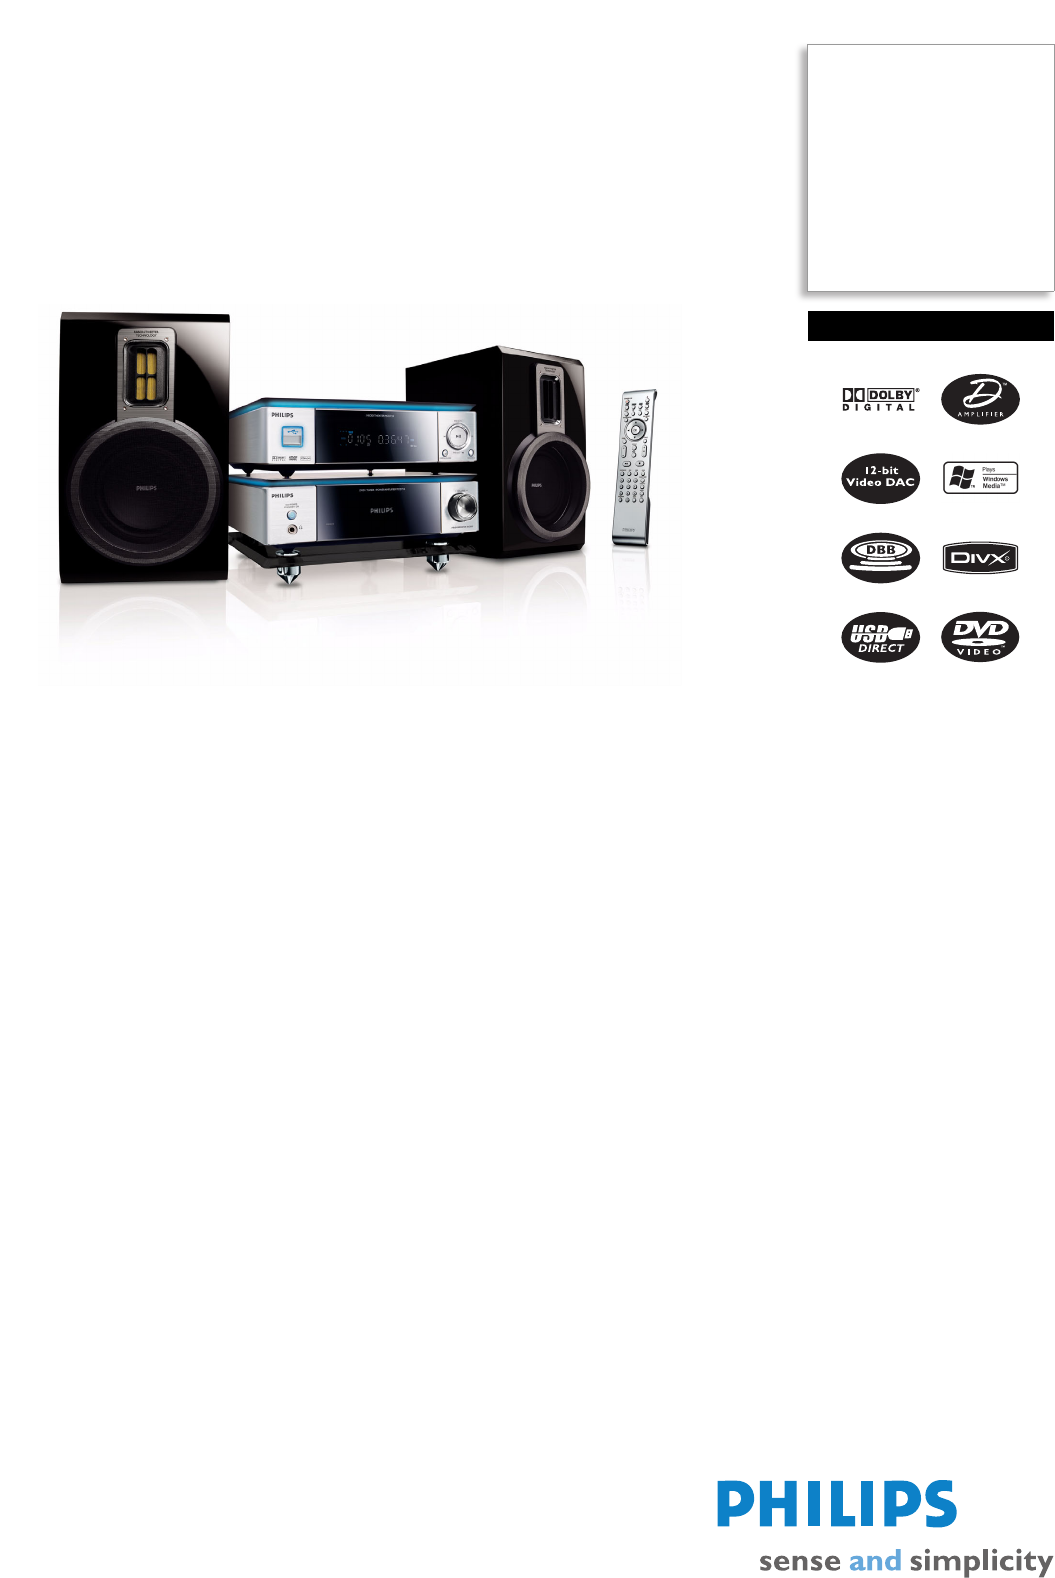 philips home theater system mcd716 12 user guide manualsonline com rh audio manualsonline com Philips Flat TV Manual Philips TV User Manual